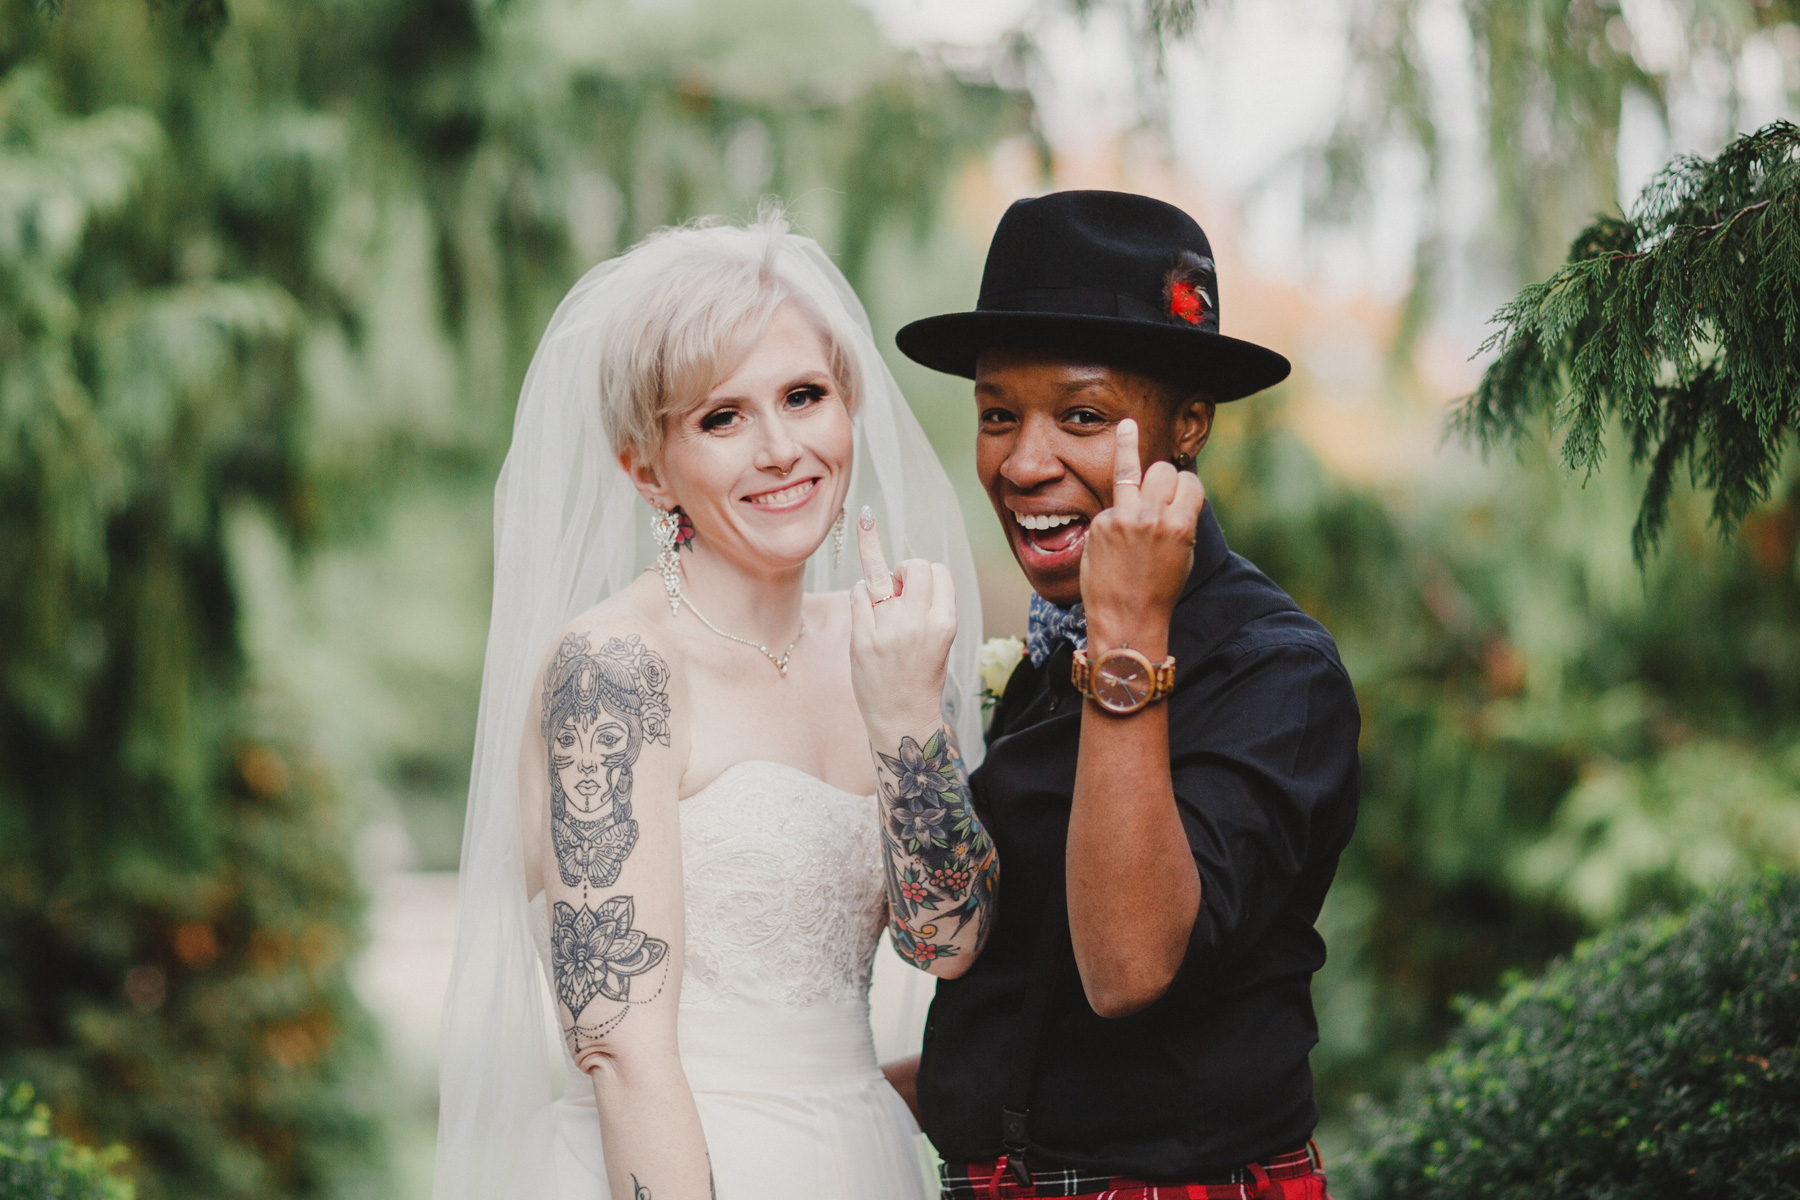 How to Photograph Same-Sex Weddings